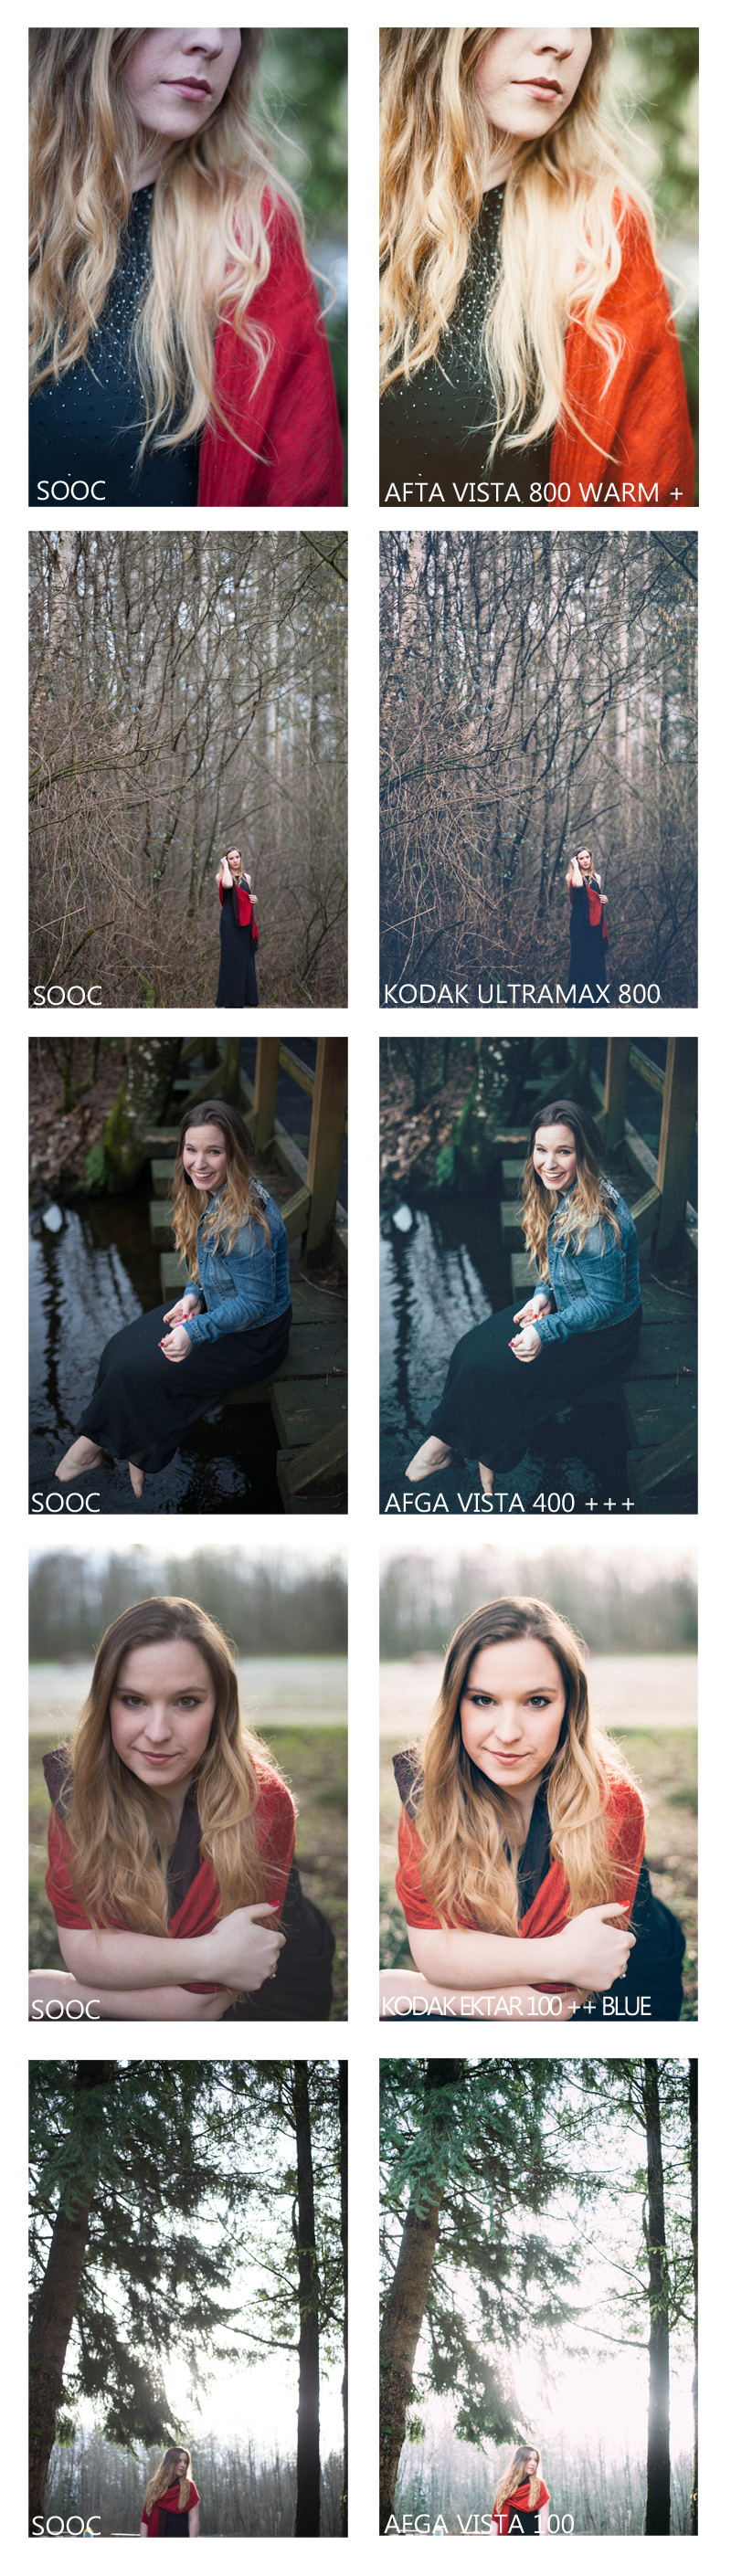 vsco before and after-800